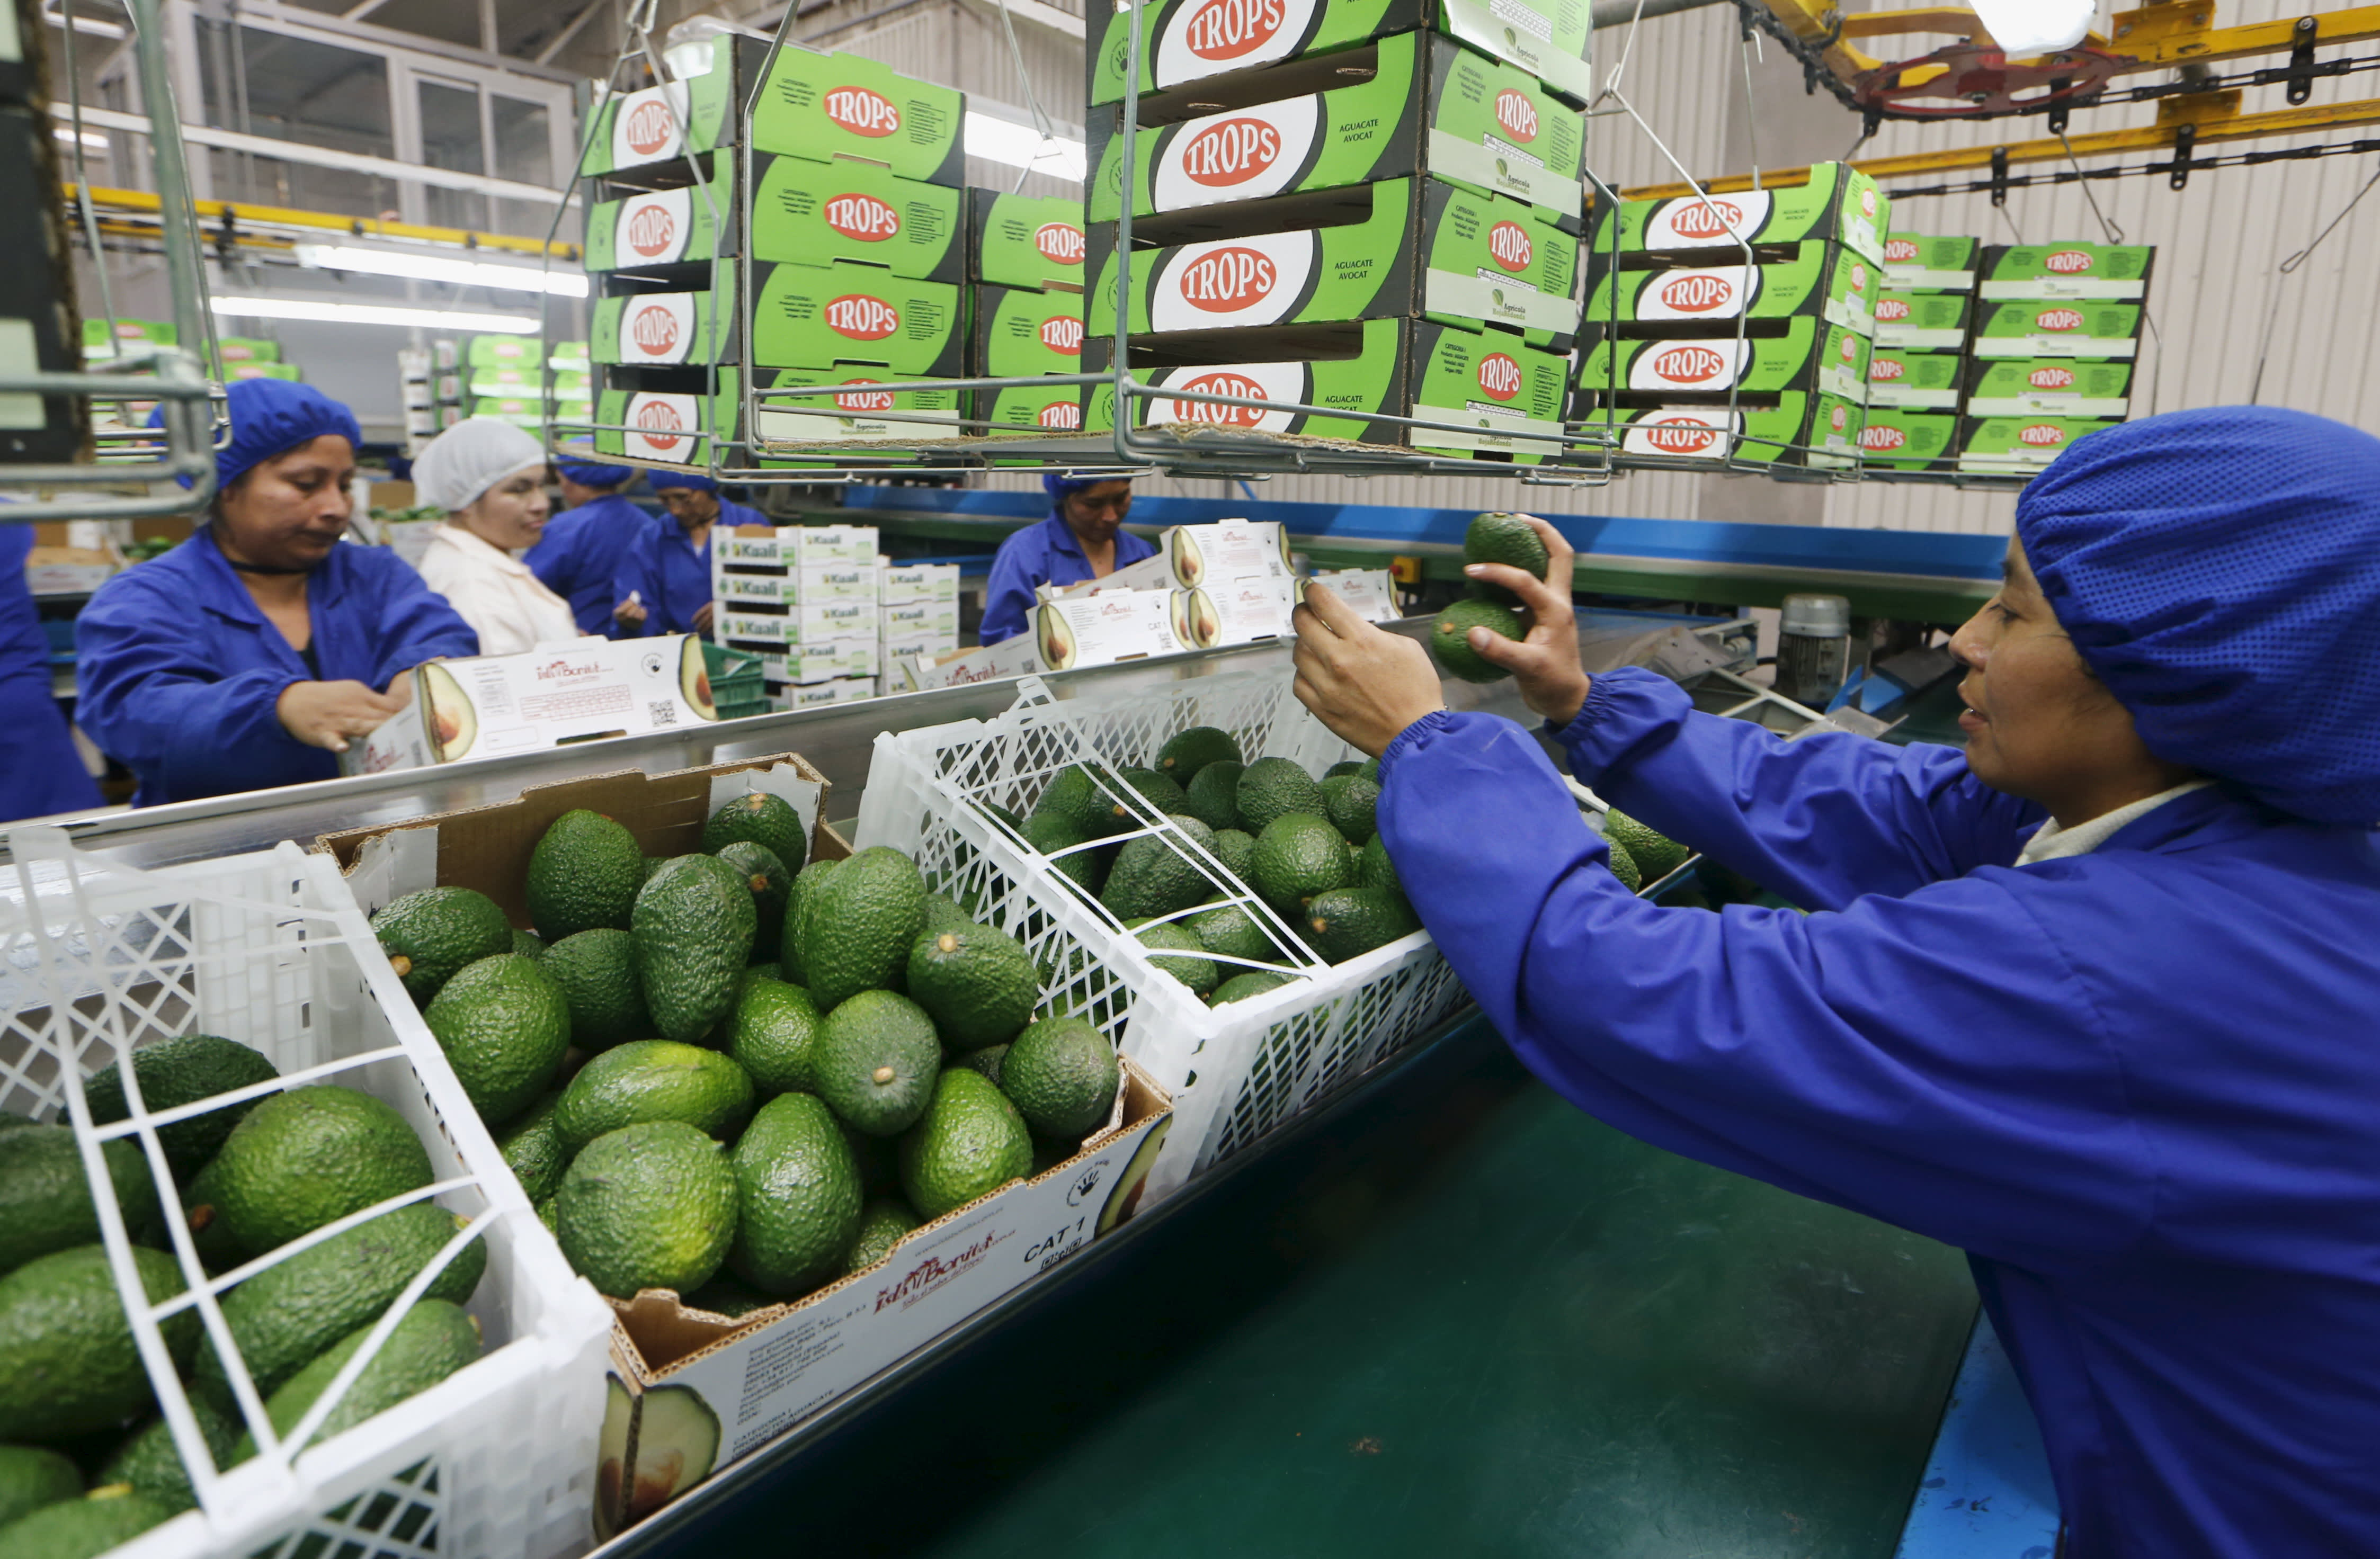 Avocado prices starting to come down as more supplies arrive